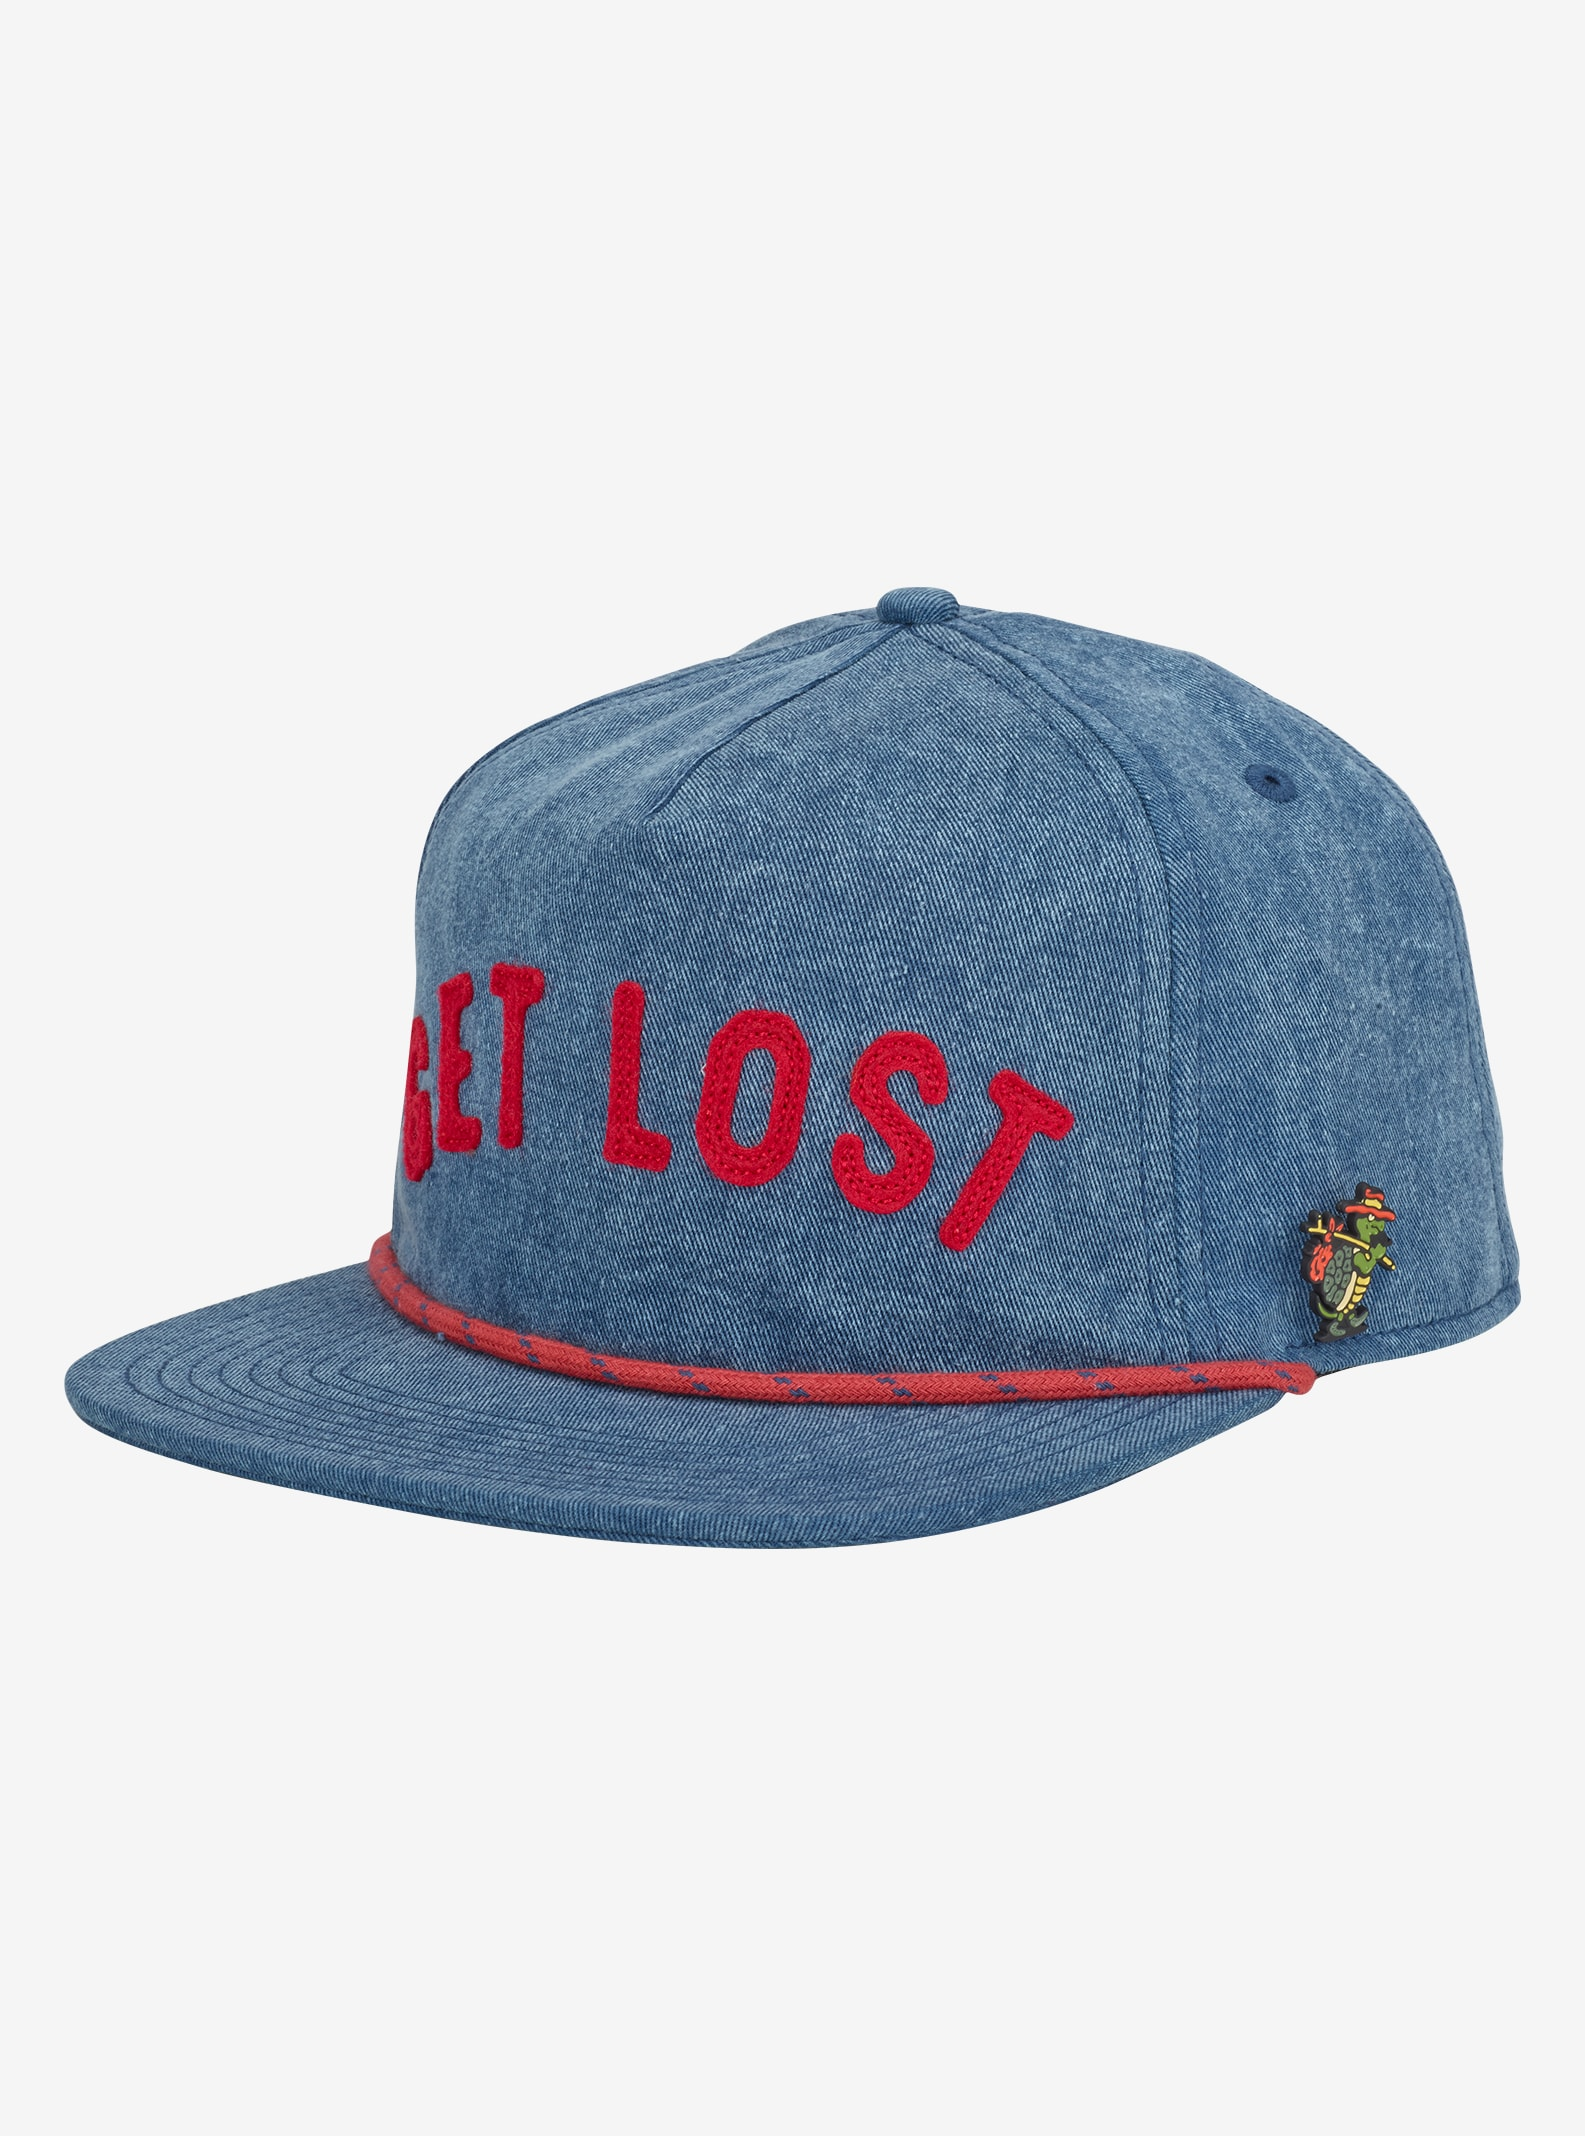 Burton Get Lost Hat shown in Indigo